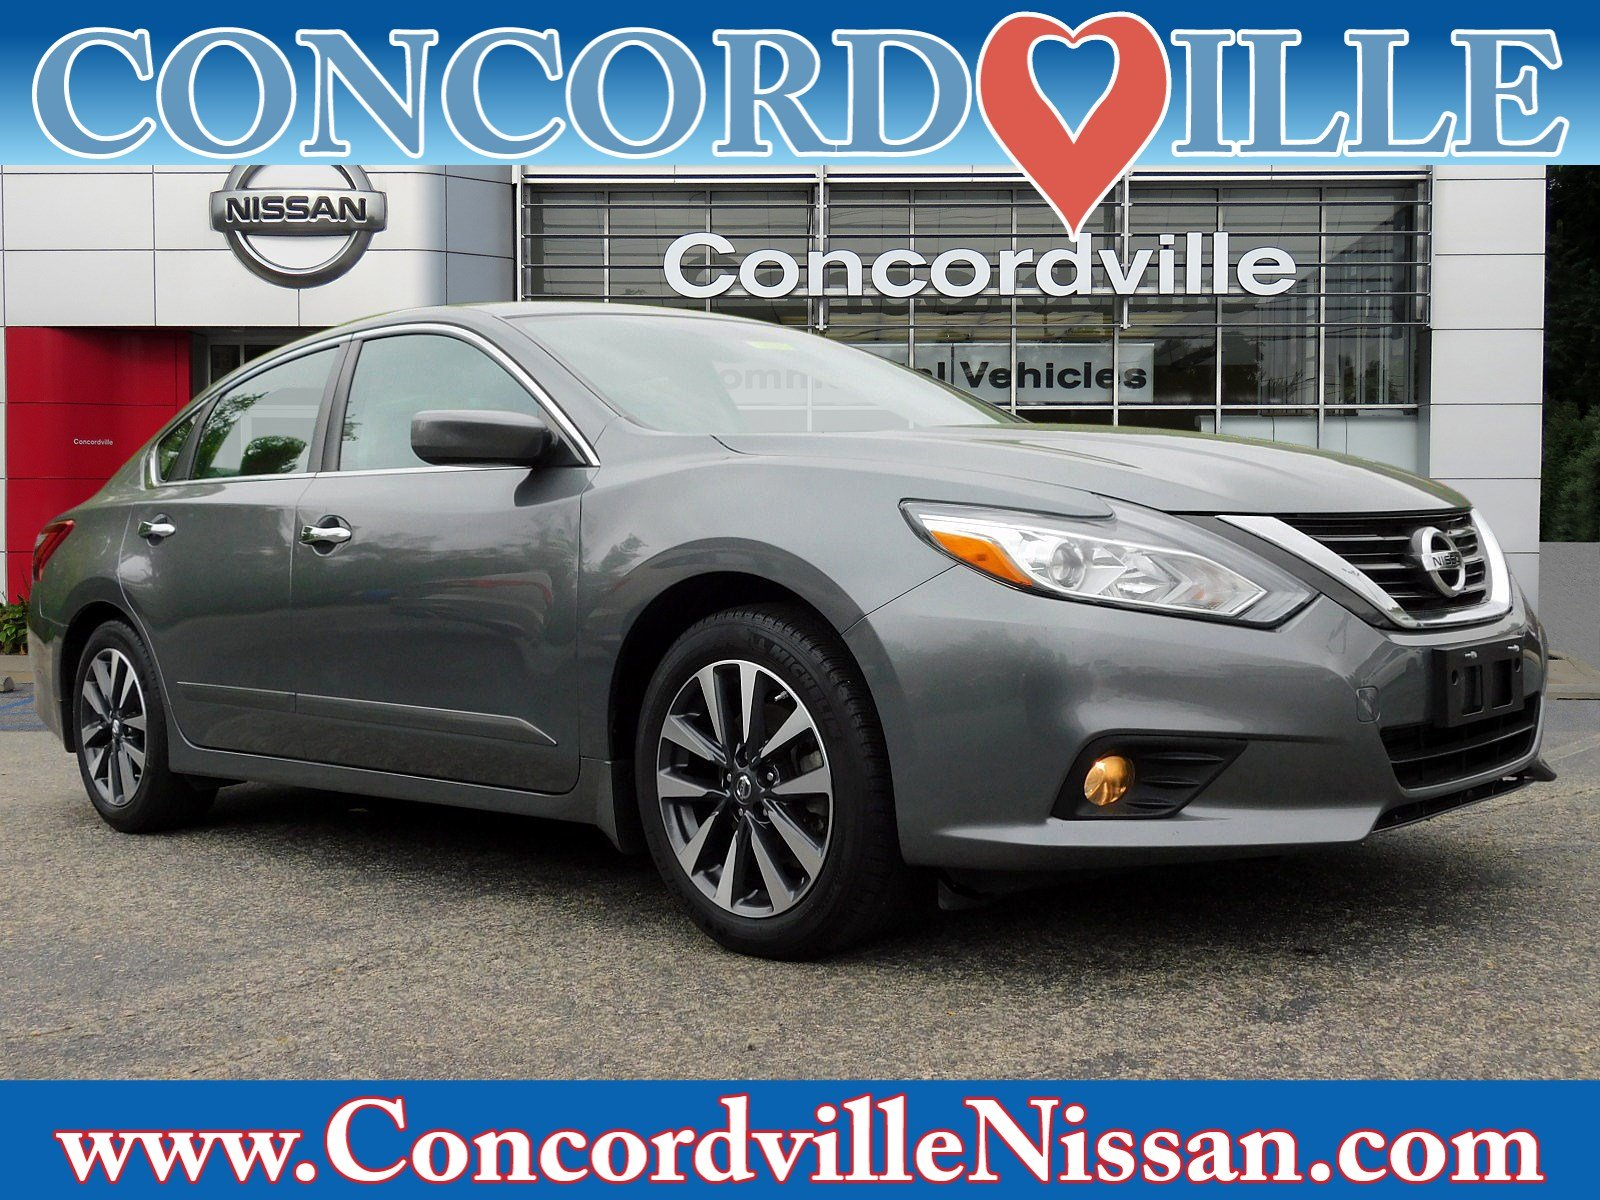 New and Used Nissan Dealer Concordville | Concordville Nissan